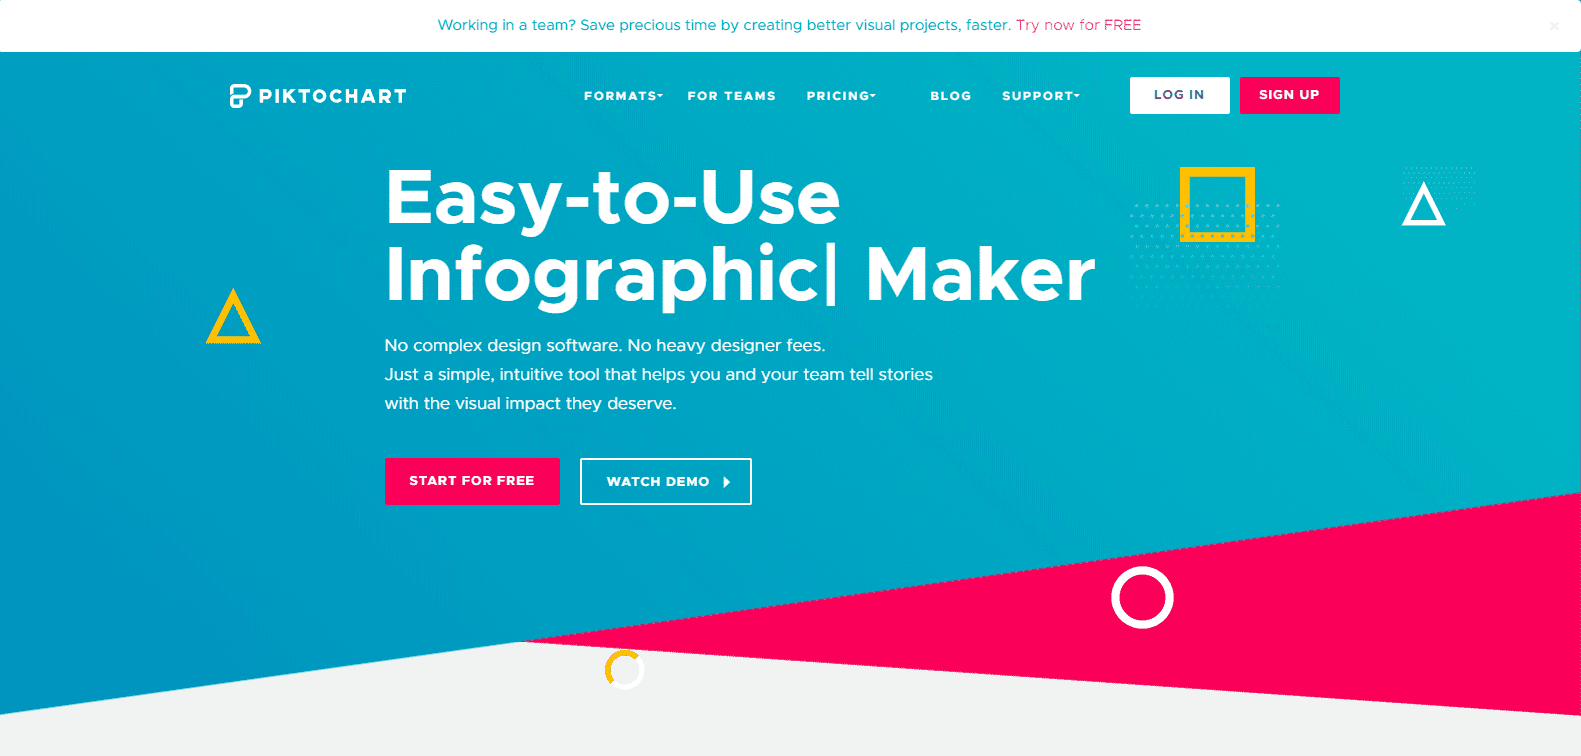 Infographic maker: Piktochart